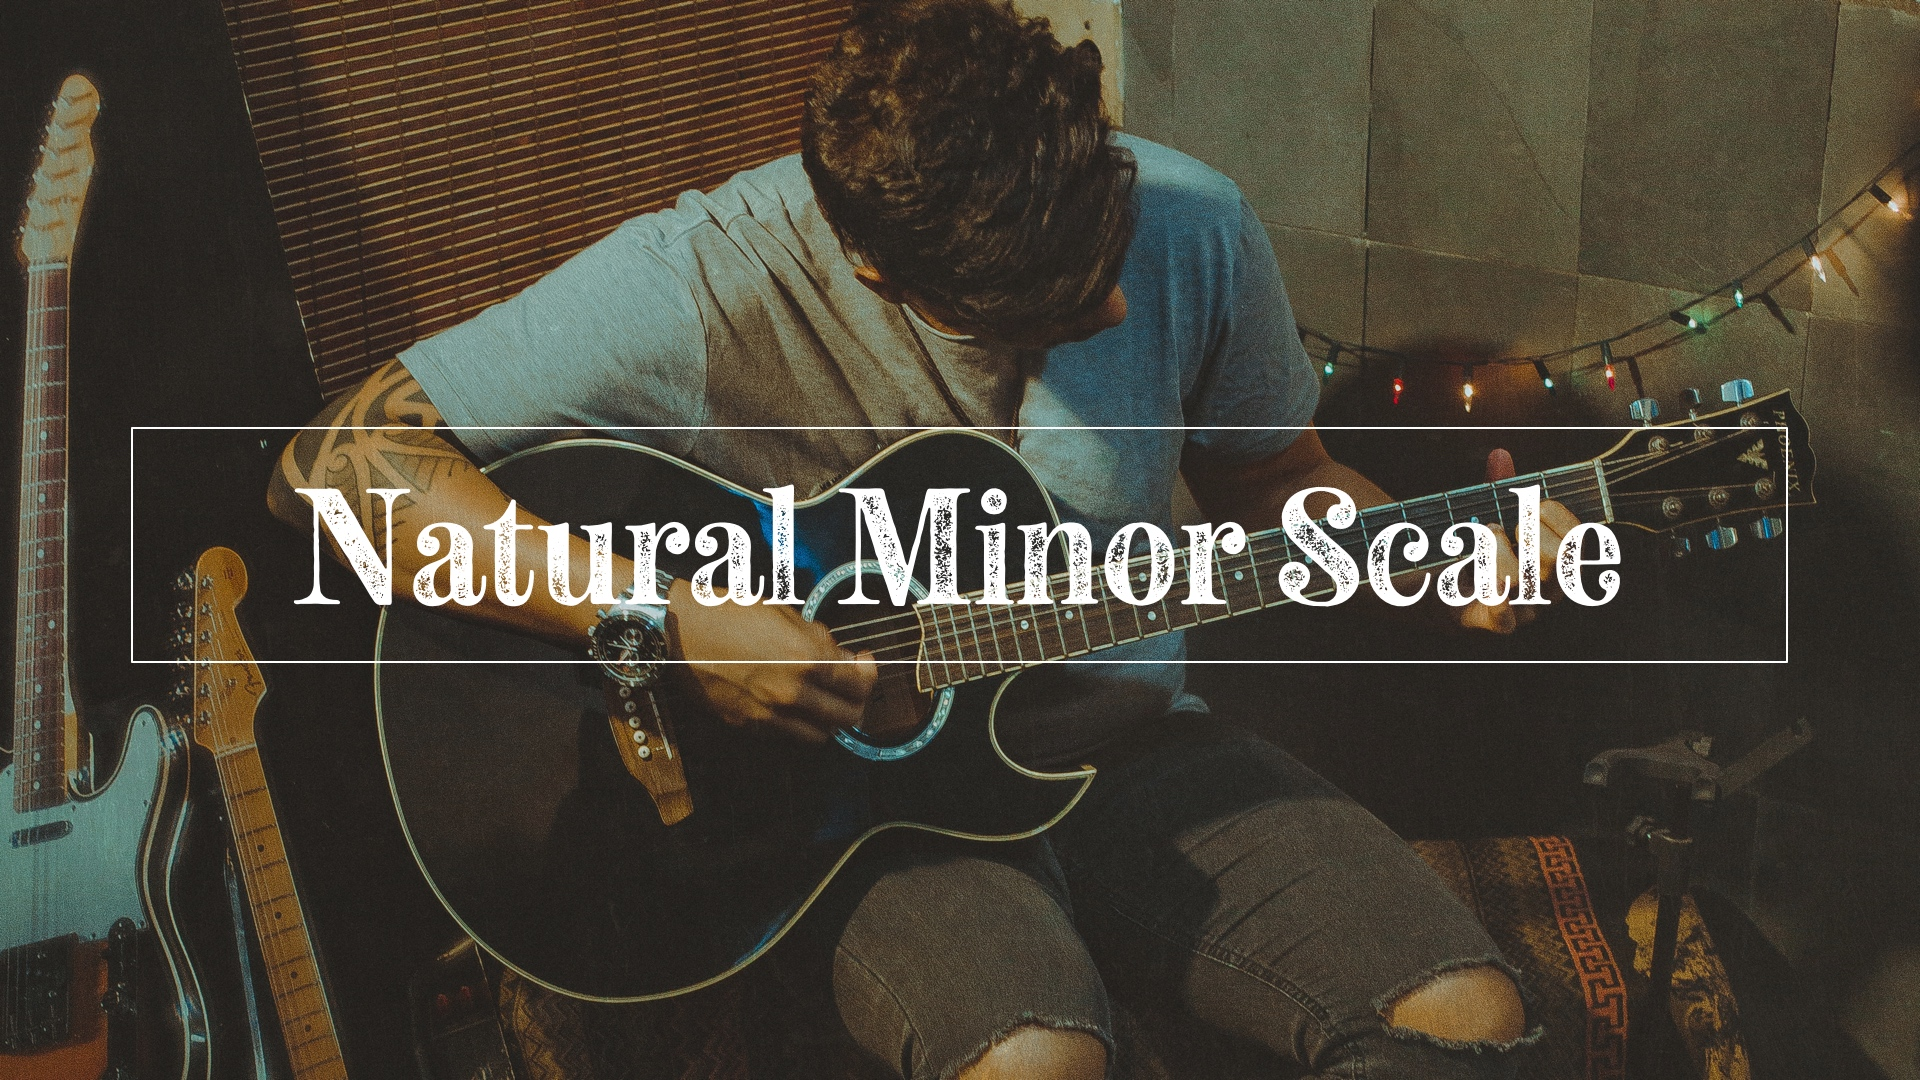 Natural minor scale